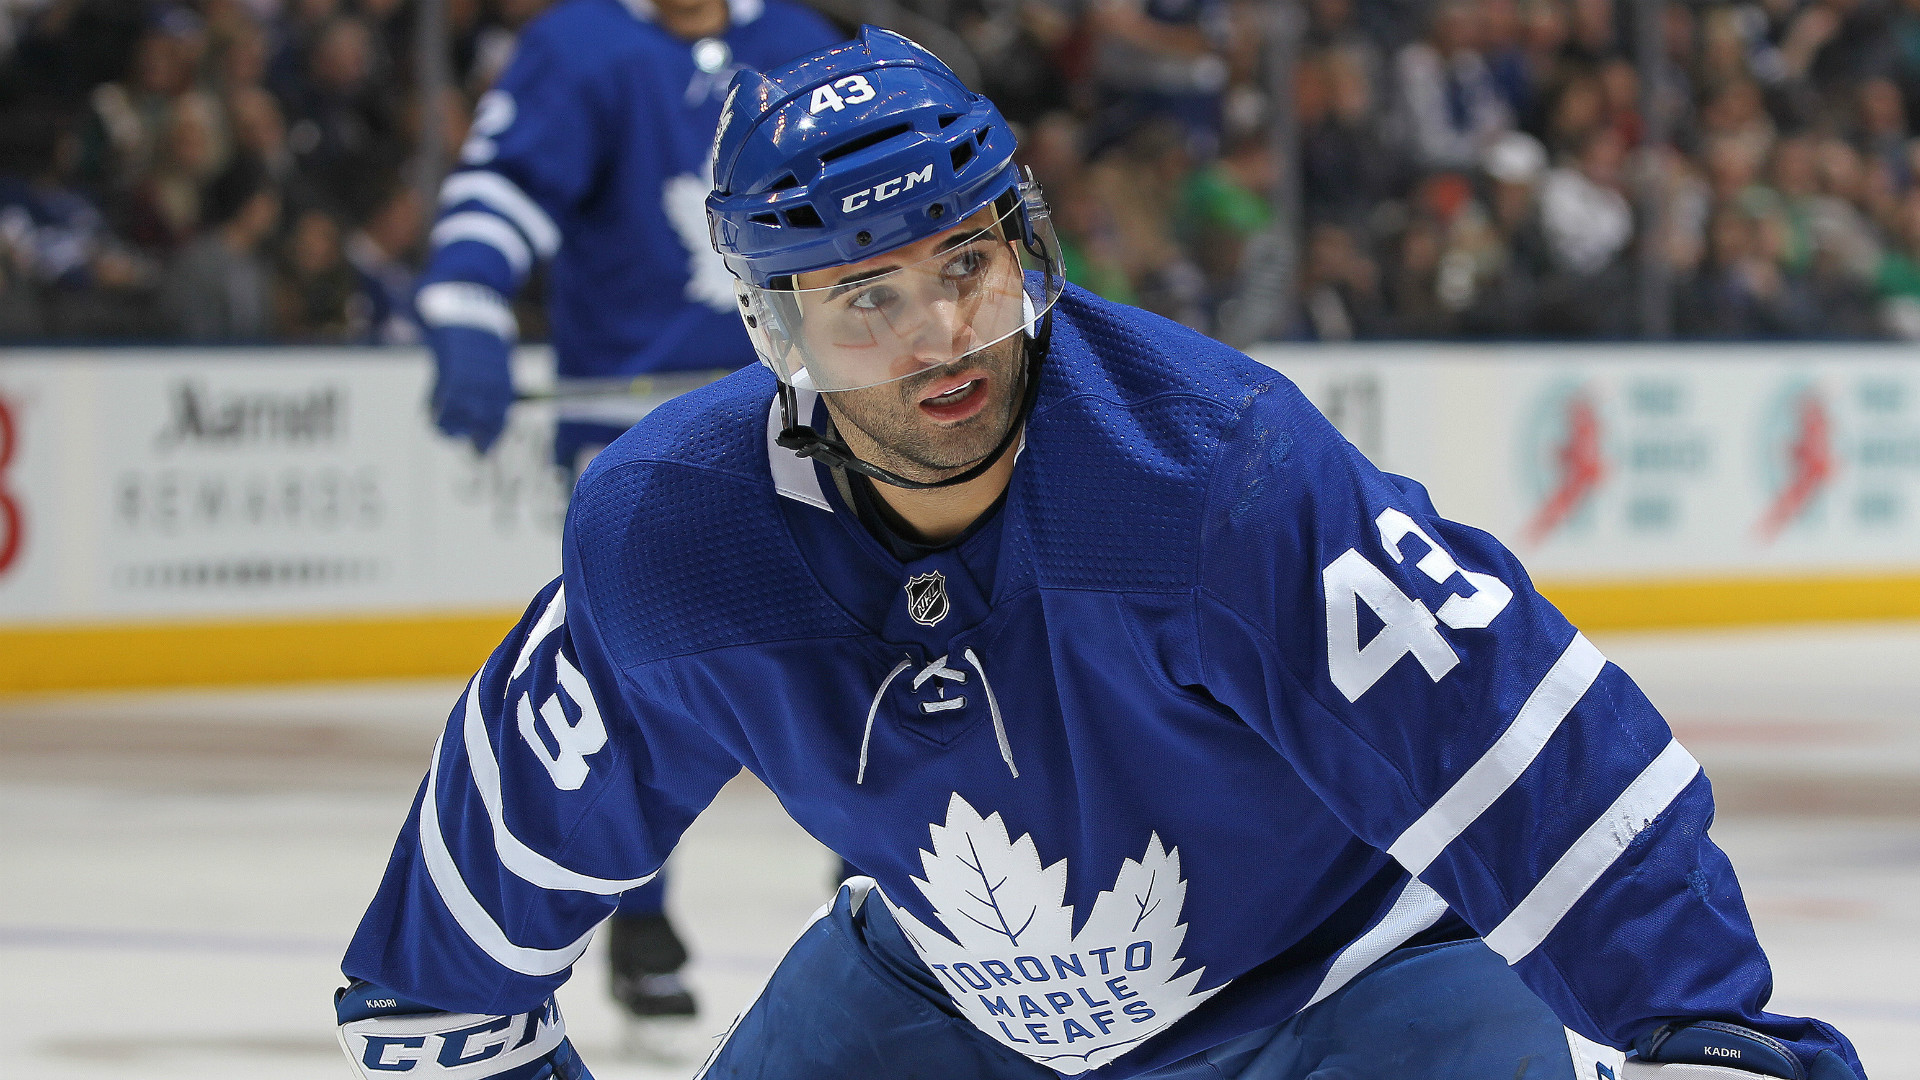 Kadri to have hearing for actions in Maple Leafs game against Bruins